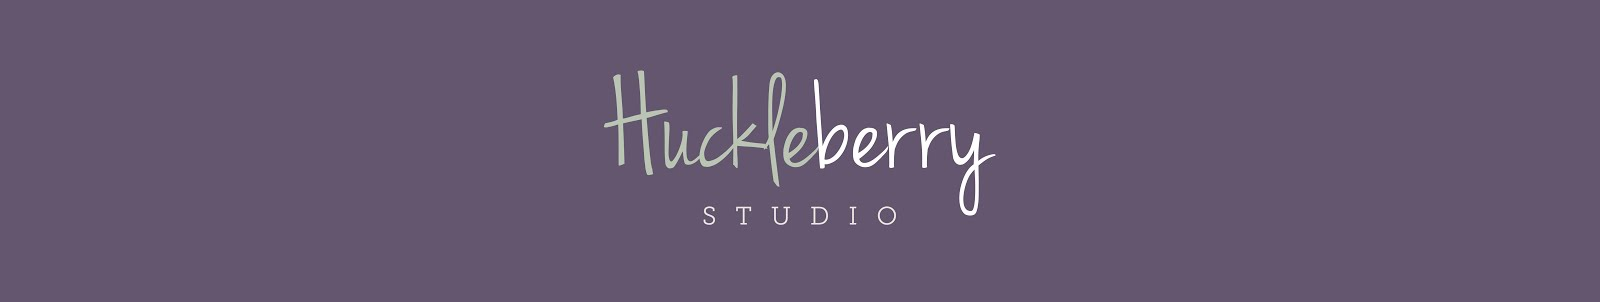 Huckleberry Studio